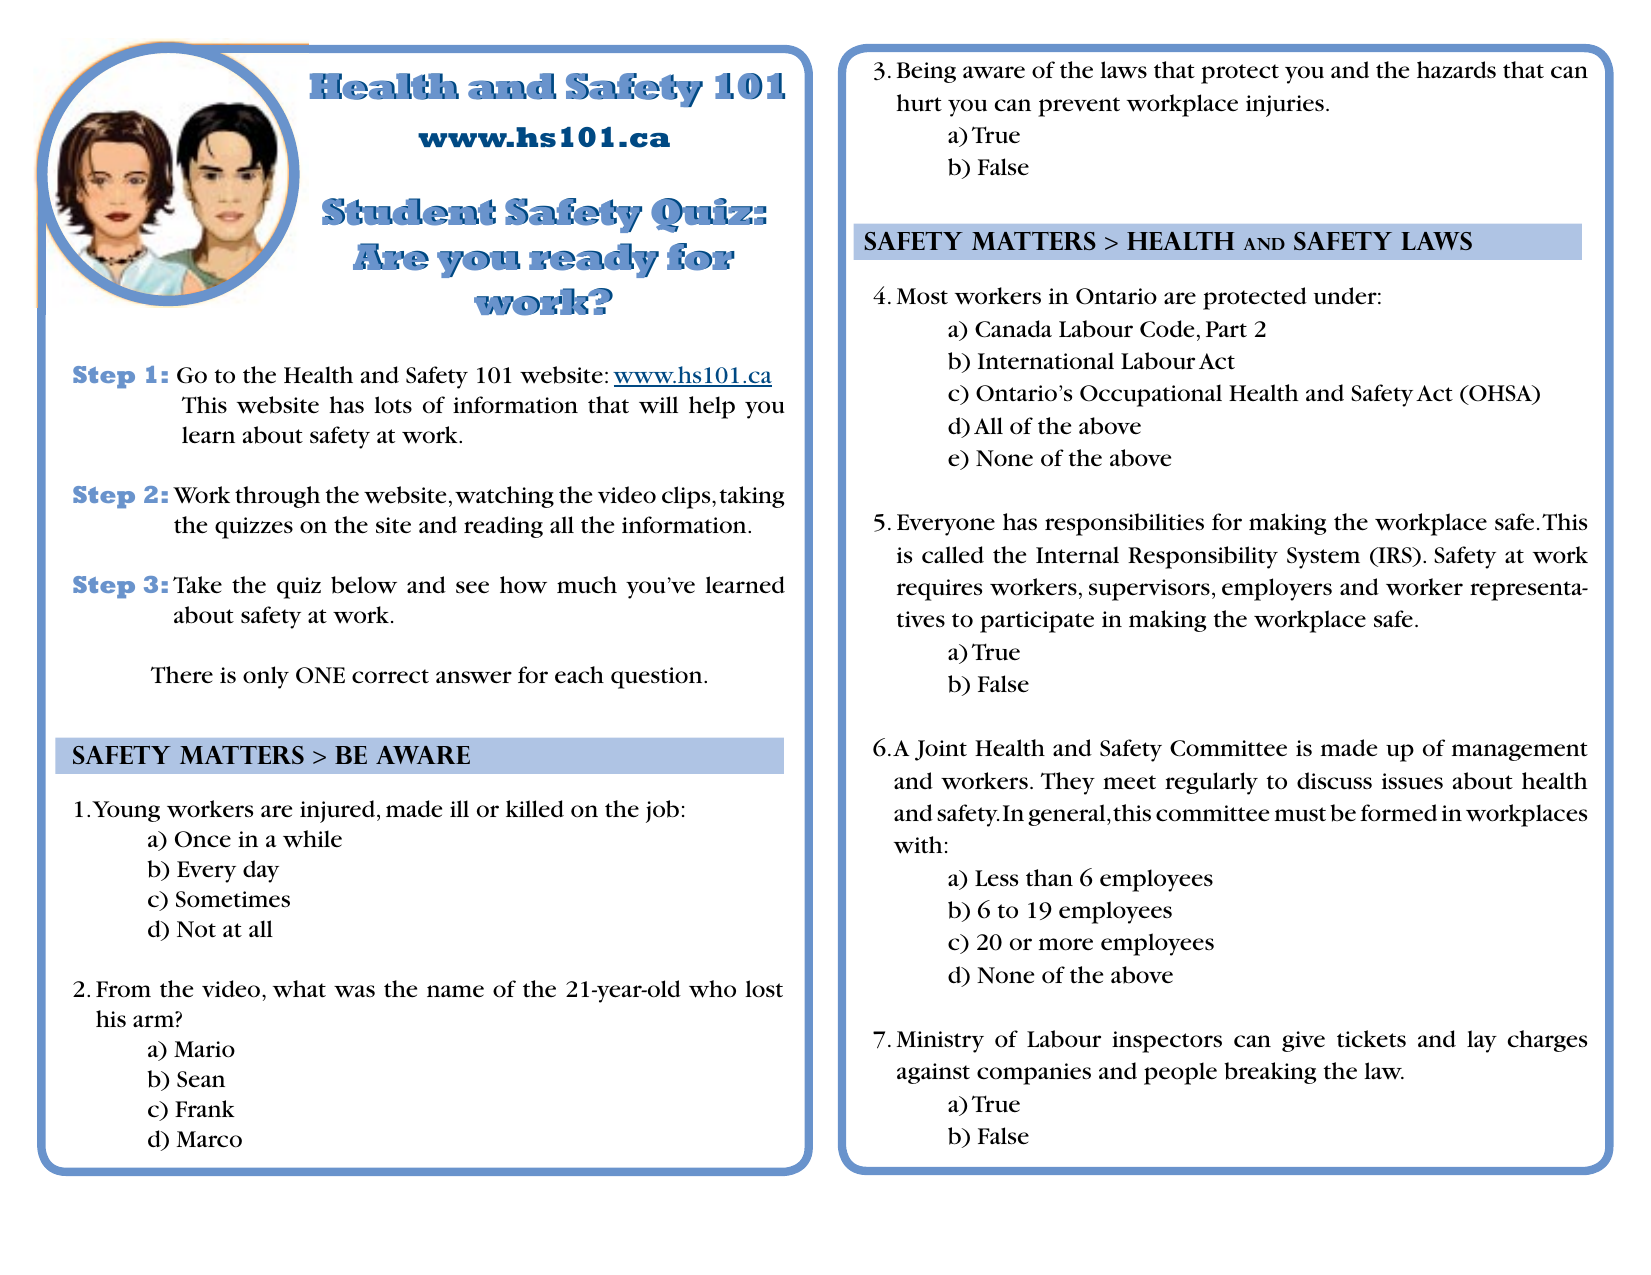 Health and Safety 101 Student Safety Quiz: Are you ready for